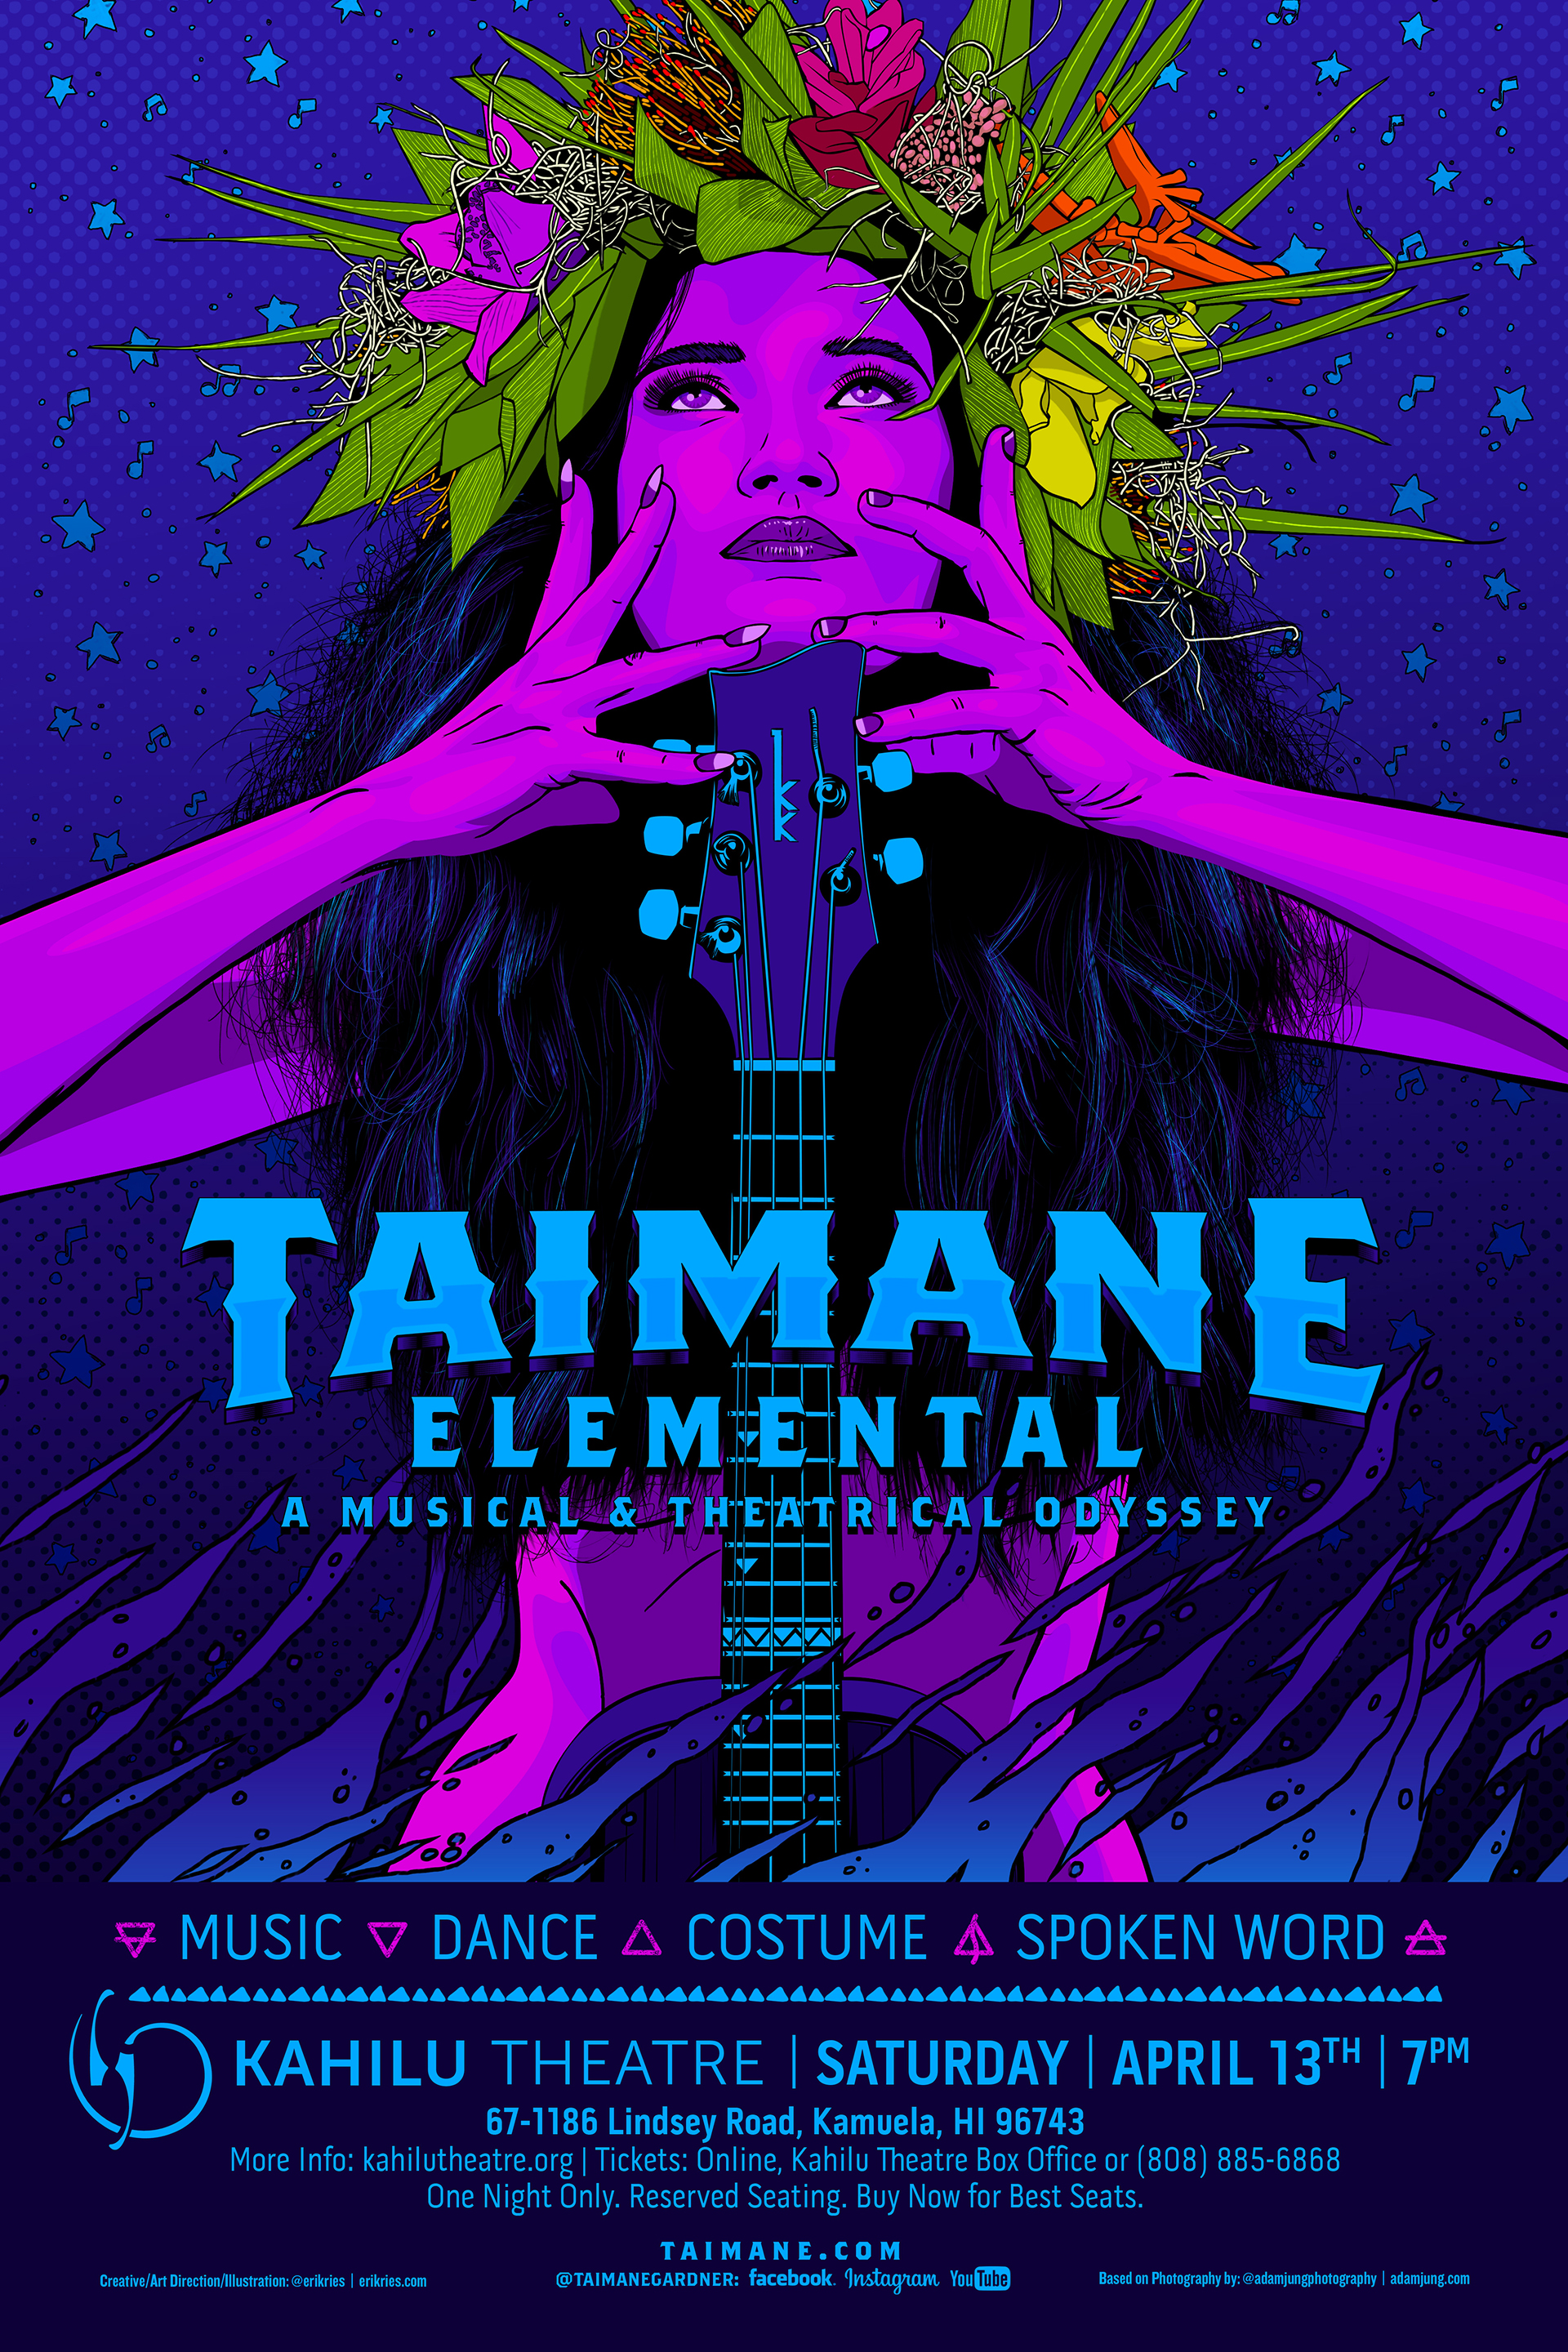 Taimane Theatrical 24x36 Venue Poster_lr1920x2880.jpg